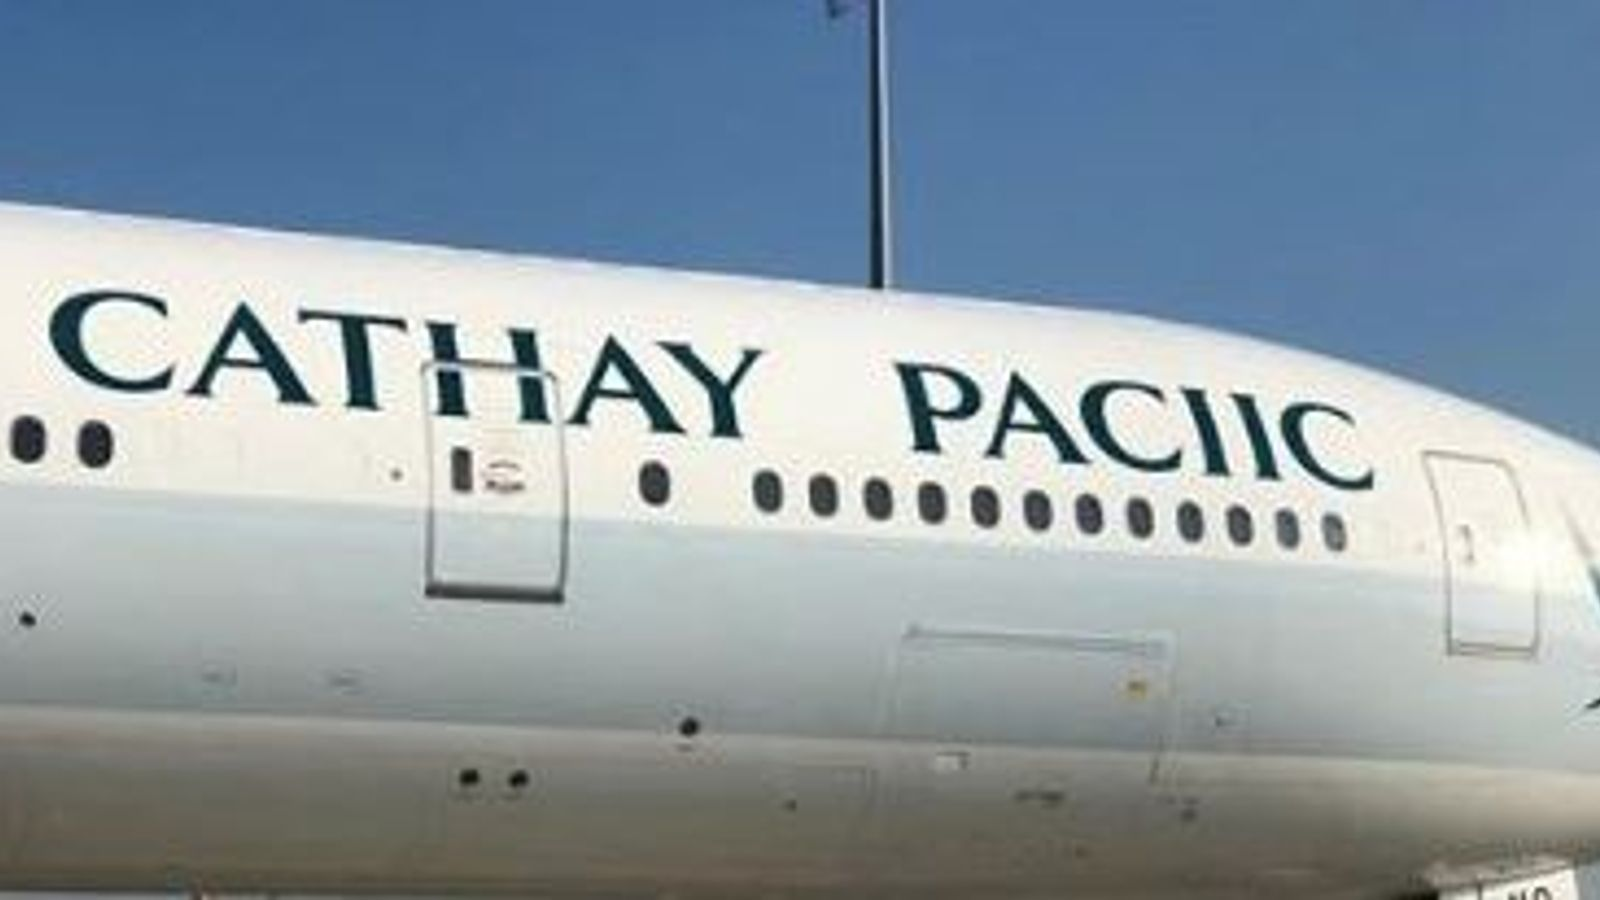 Cathay Pacific spells own name wrong on side of plane